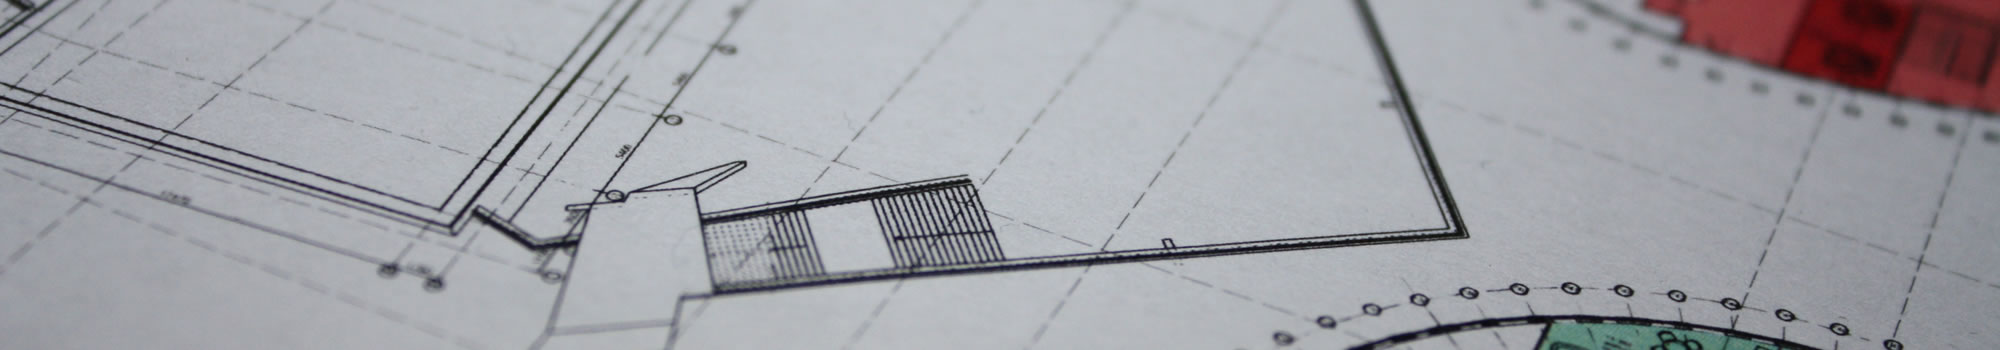 facility-care-ontwerp